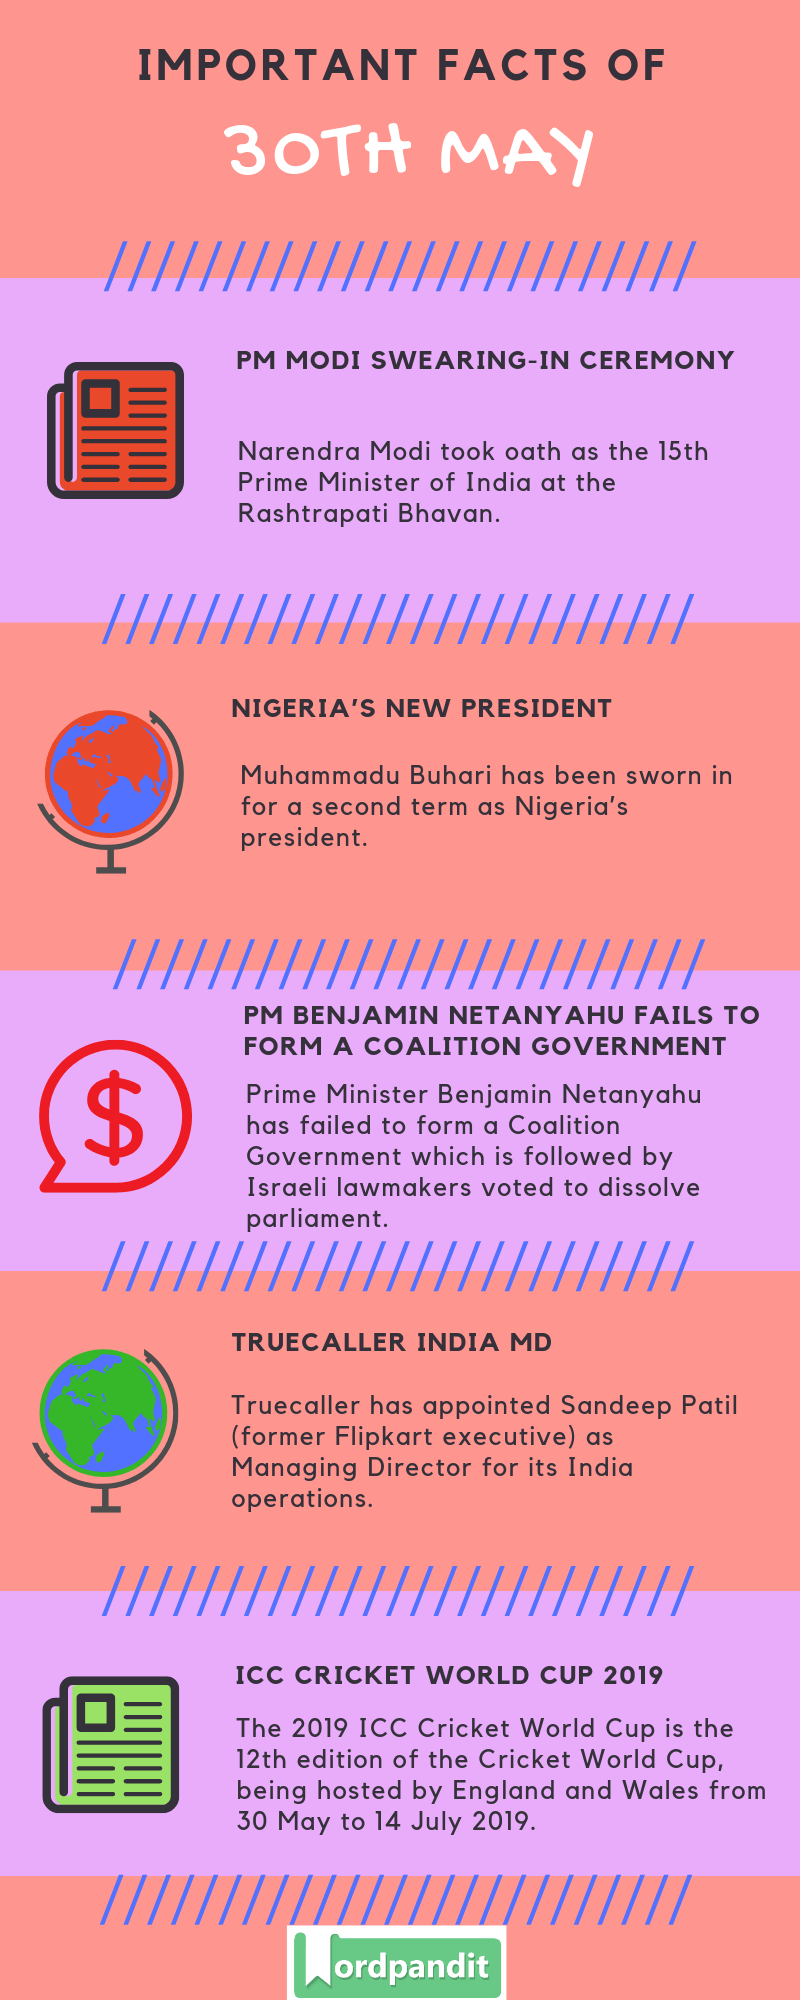 Daily Current Affairs 30 May 2019 Current Affairs Quiz 30 May 2019 Current Affairs Infographic